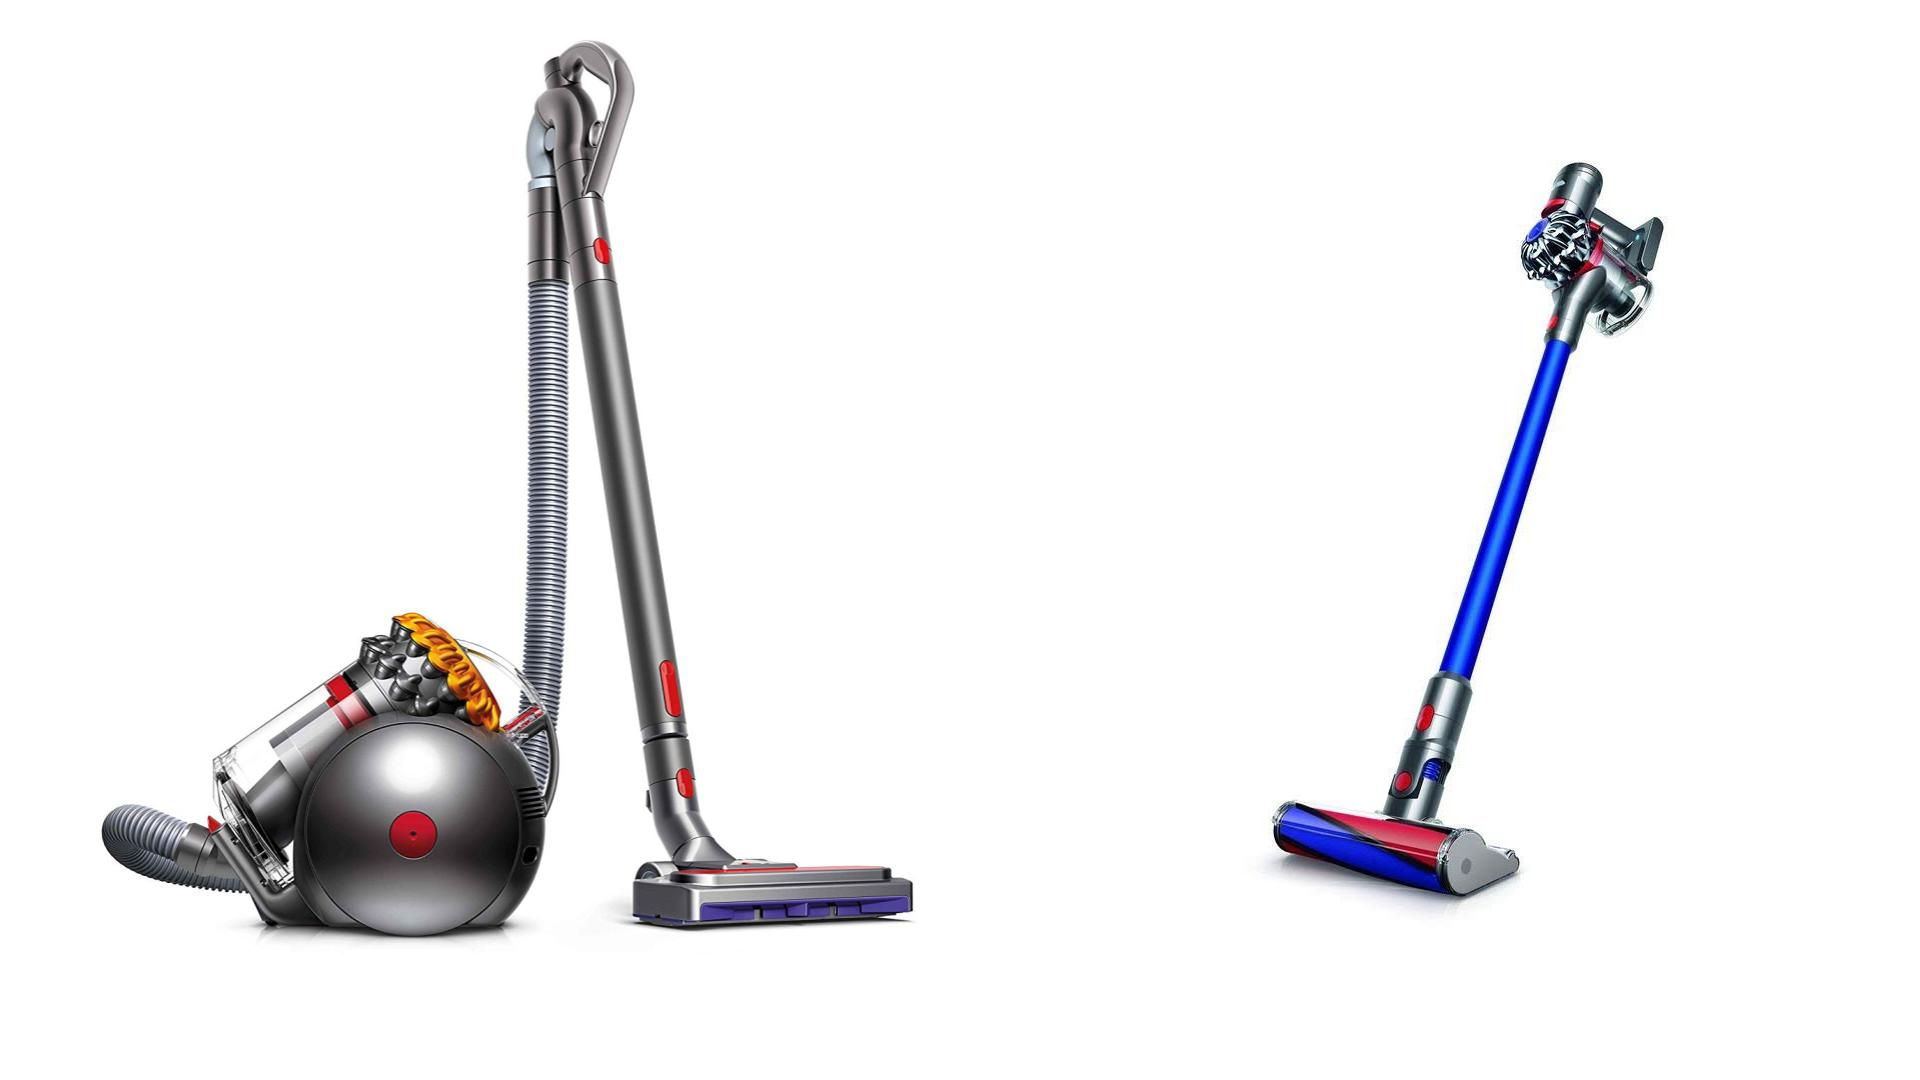 black friday des aspirateurs dyson partir de 229 euros chez amazon frandroid. Black Bedroom Furniture Sets. Home Design Ideas